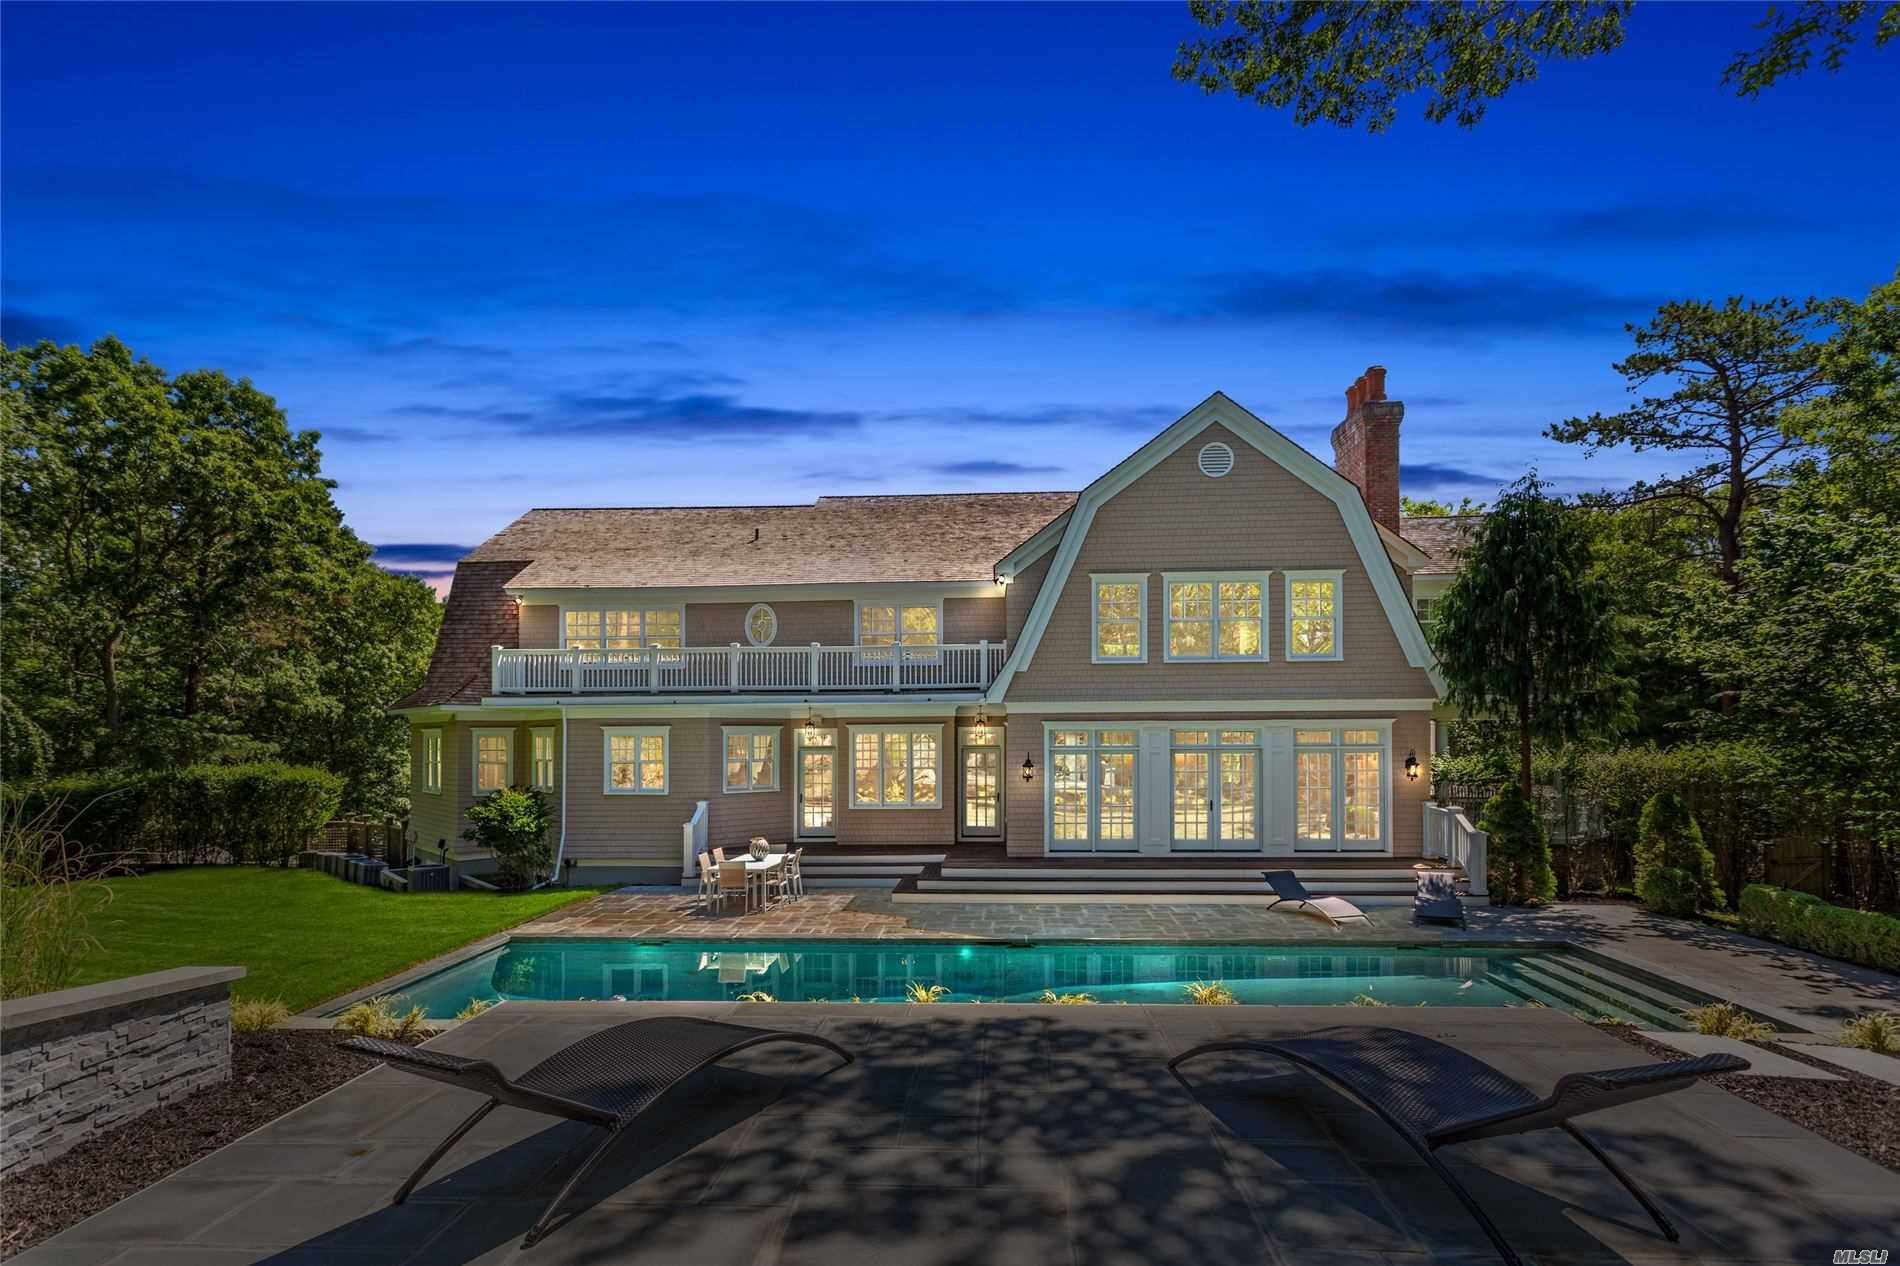 This palatial estate in the center of the Hamptons provides every amenity necessary for a life of luxury. Completely renovated and updated for the 21st century with over 6,900 square feet and situated on 2.7 acres of land. This spacious colonial contains plentiful entertainment options; a theater room, a sauna, a gym, a bar, a library, a gunite heated swimming pool, outdoor and indoor fire places, a ballroom, smart home connections, an open concept basement, a 3 car garage, a butler's pantry, and a maid's room.